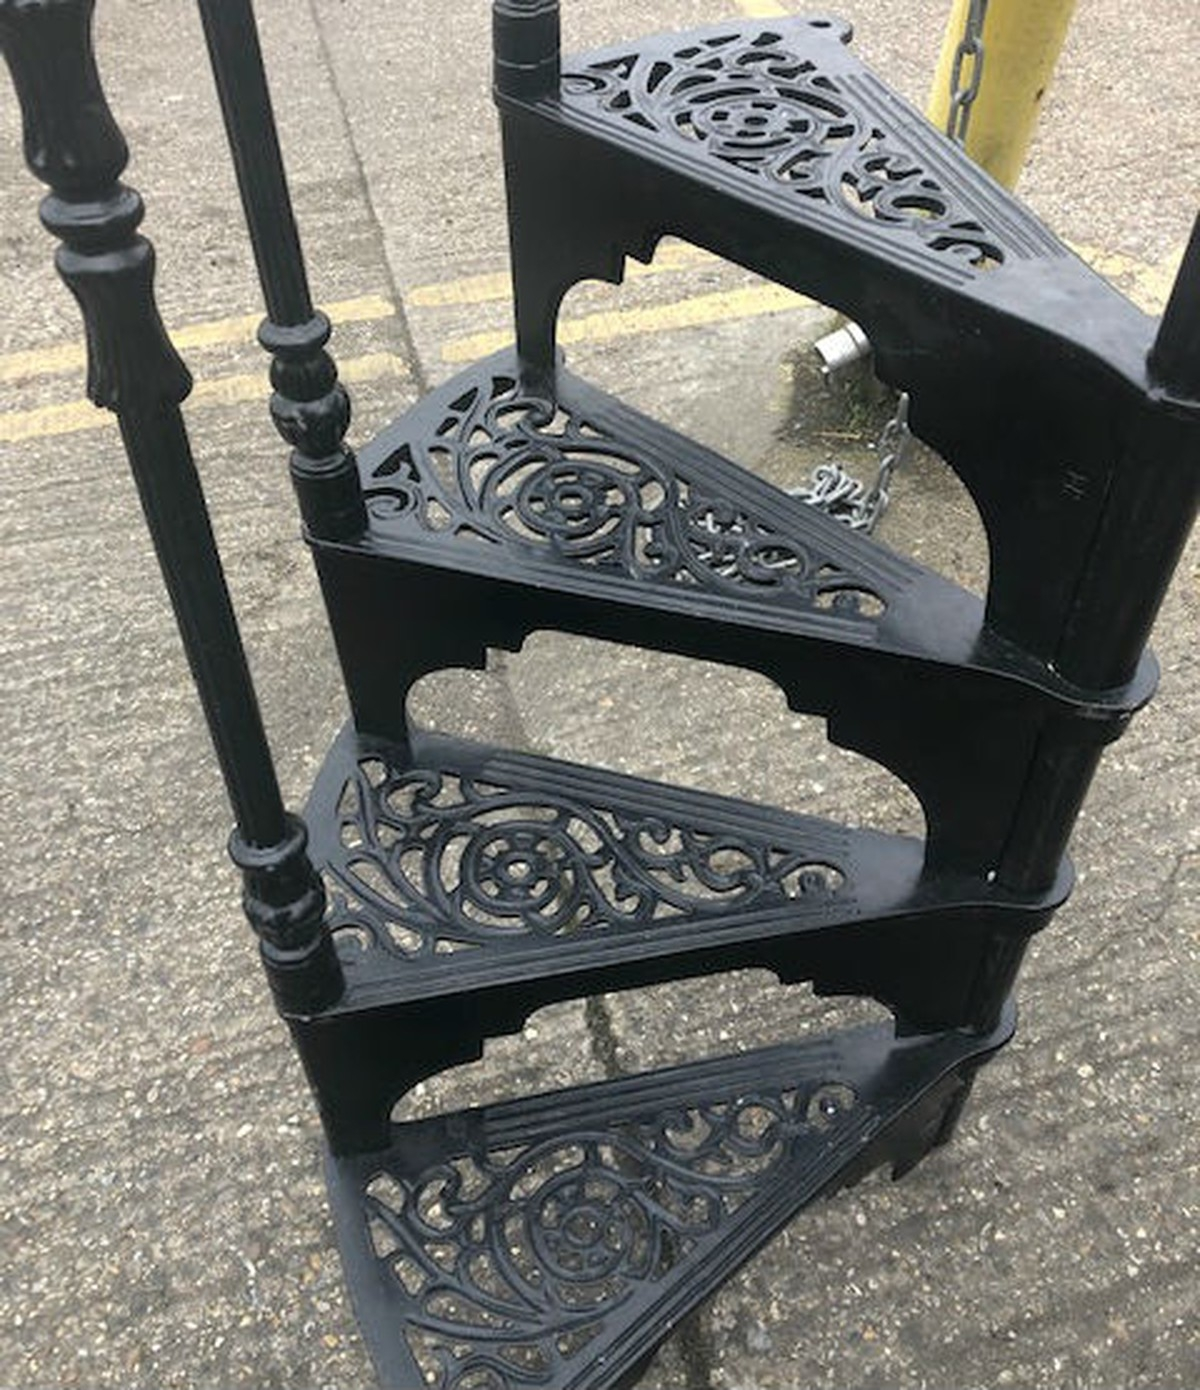 Secondhand Vintage And Reclaimed Staircases 12 Spiral   Reclaimed Spiral Staircase For Sale   Architectural Antiques   Wrought Iron Spiral   Architectural Salvage   Reclaimed Antique   Railing